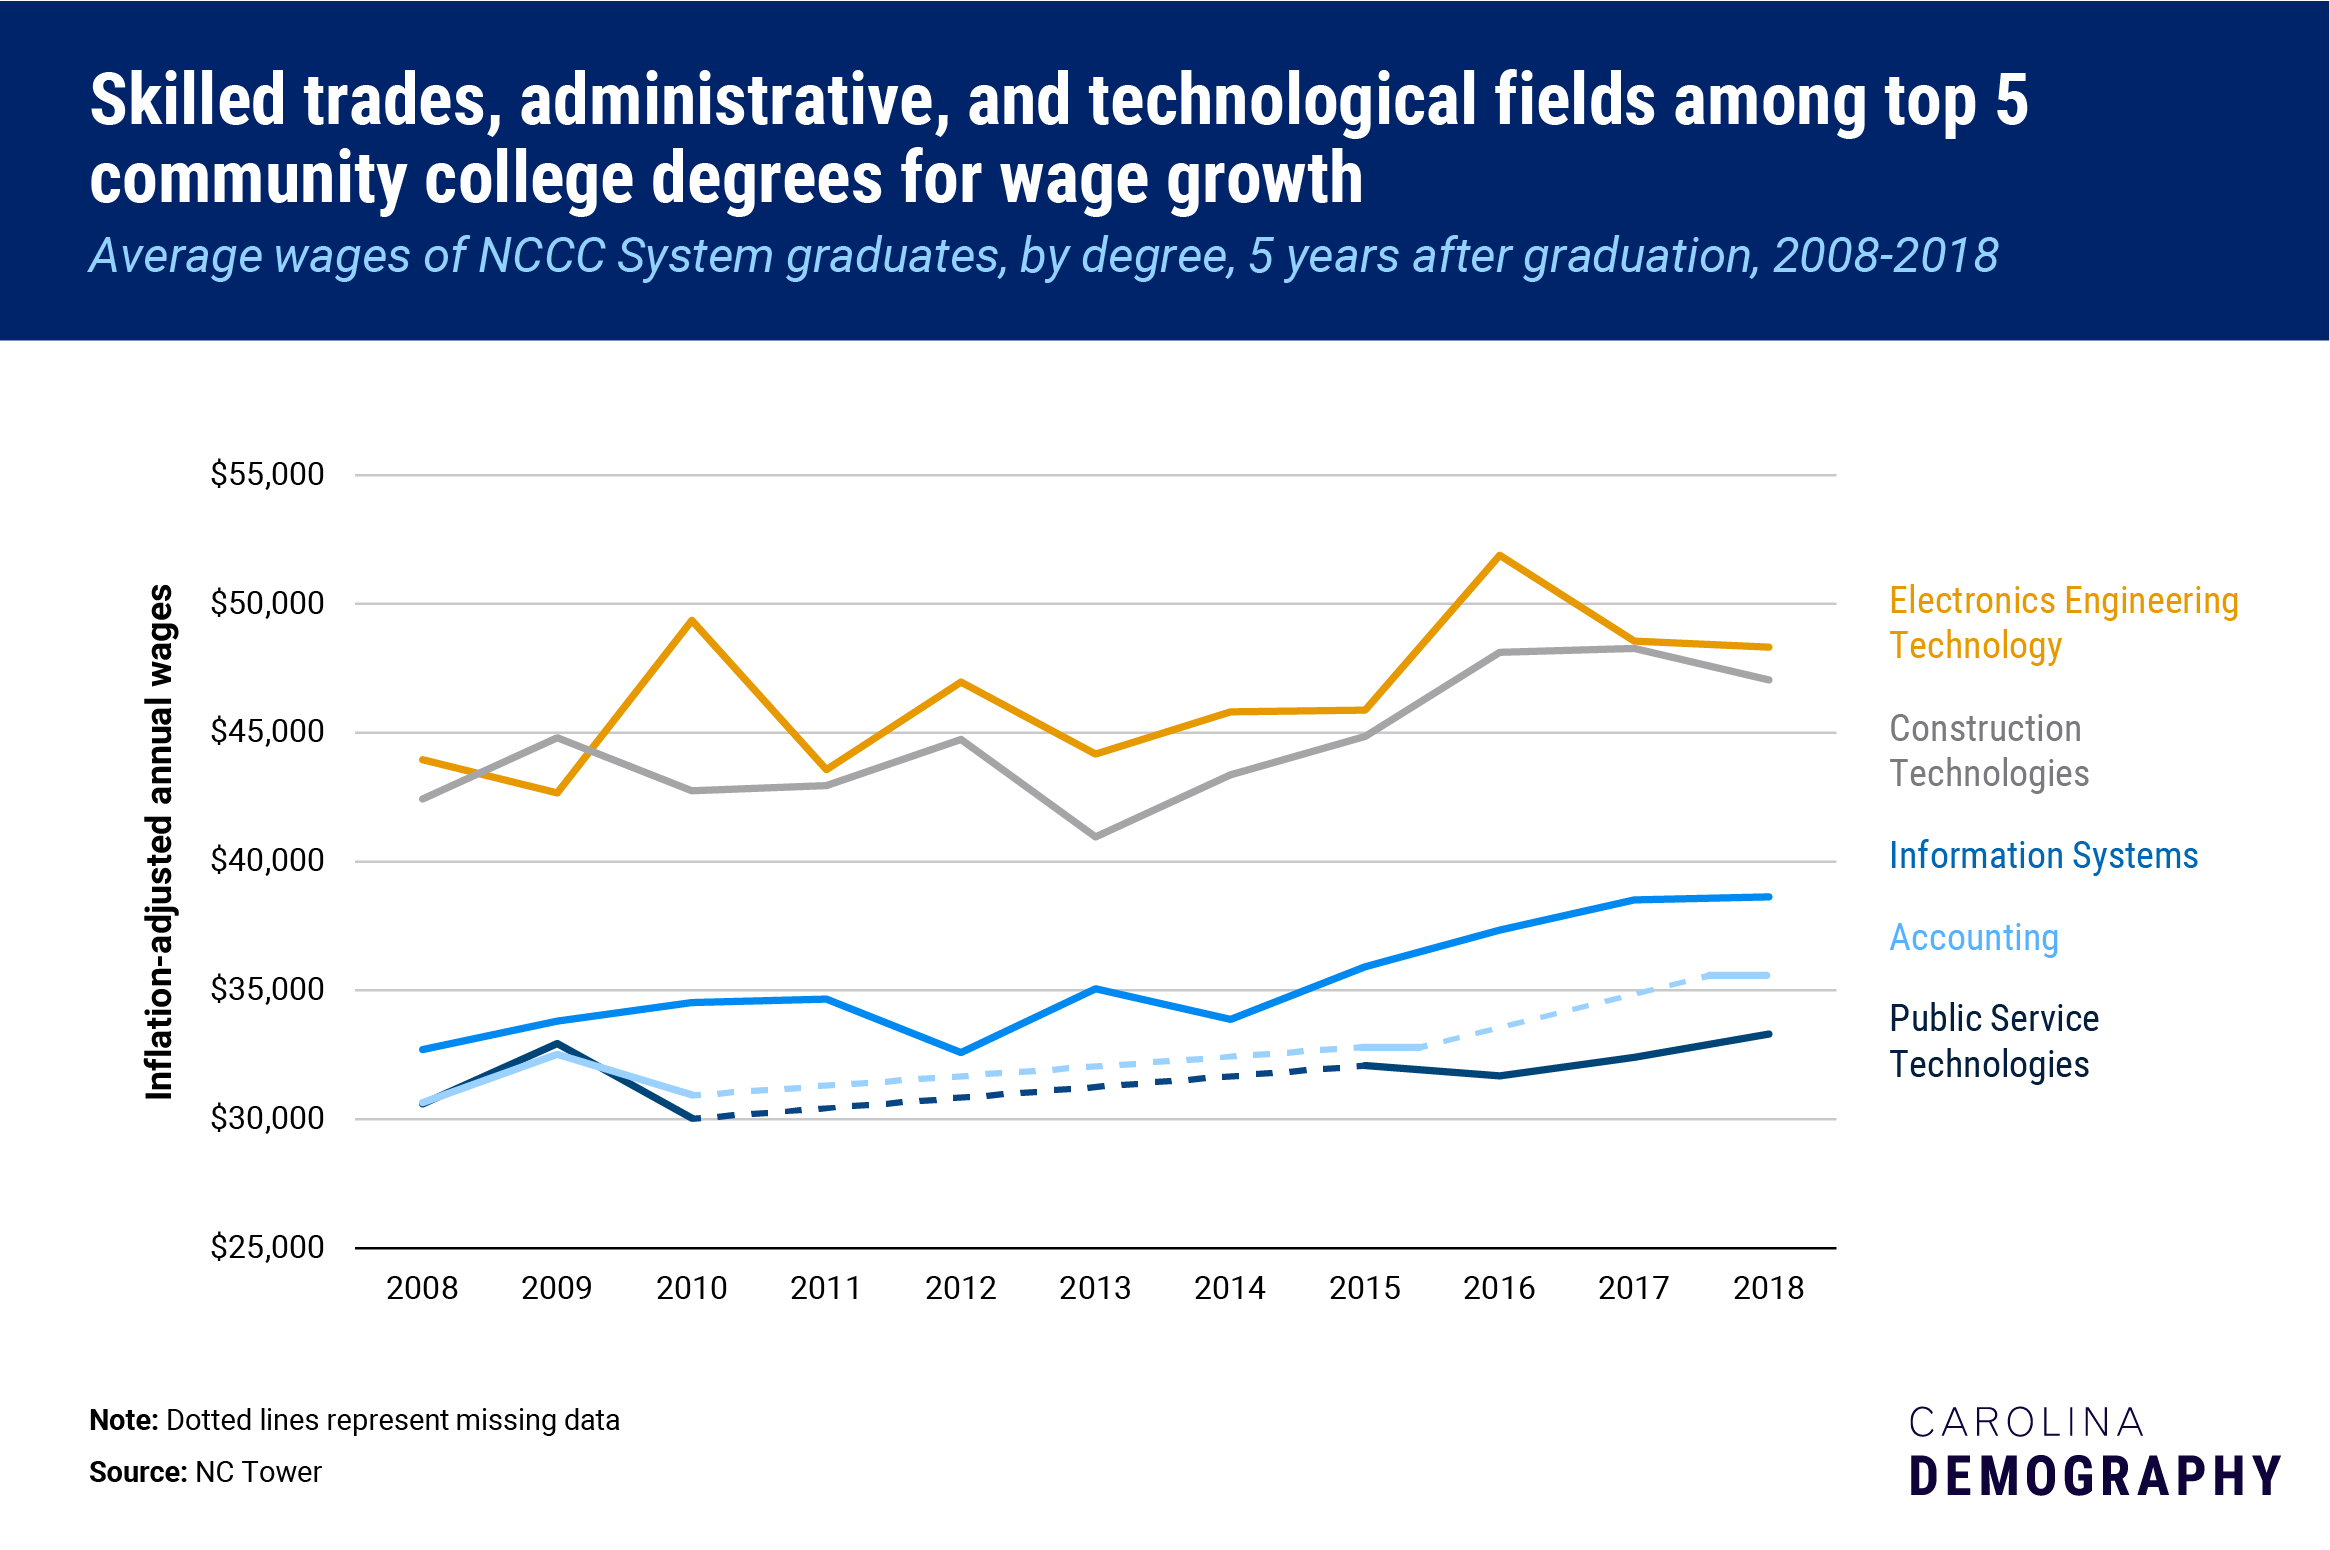 NCCC highest wages programs over 5 years